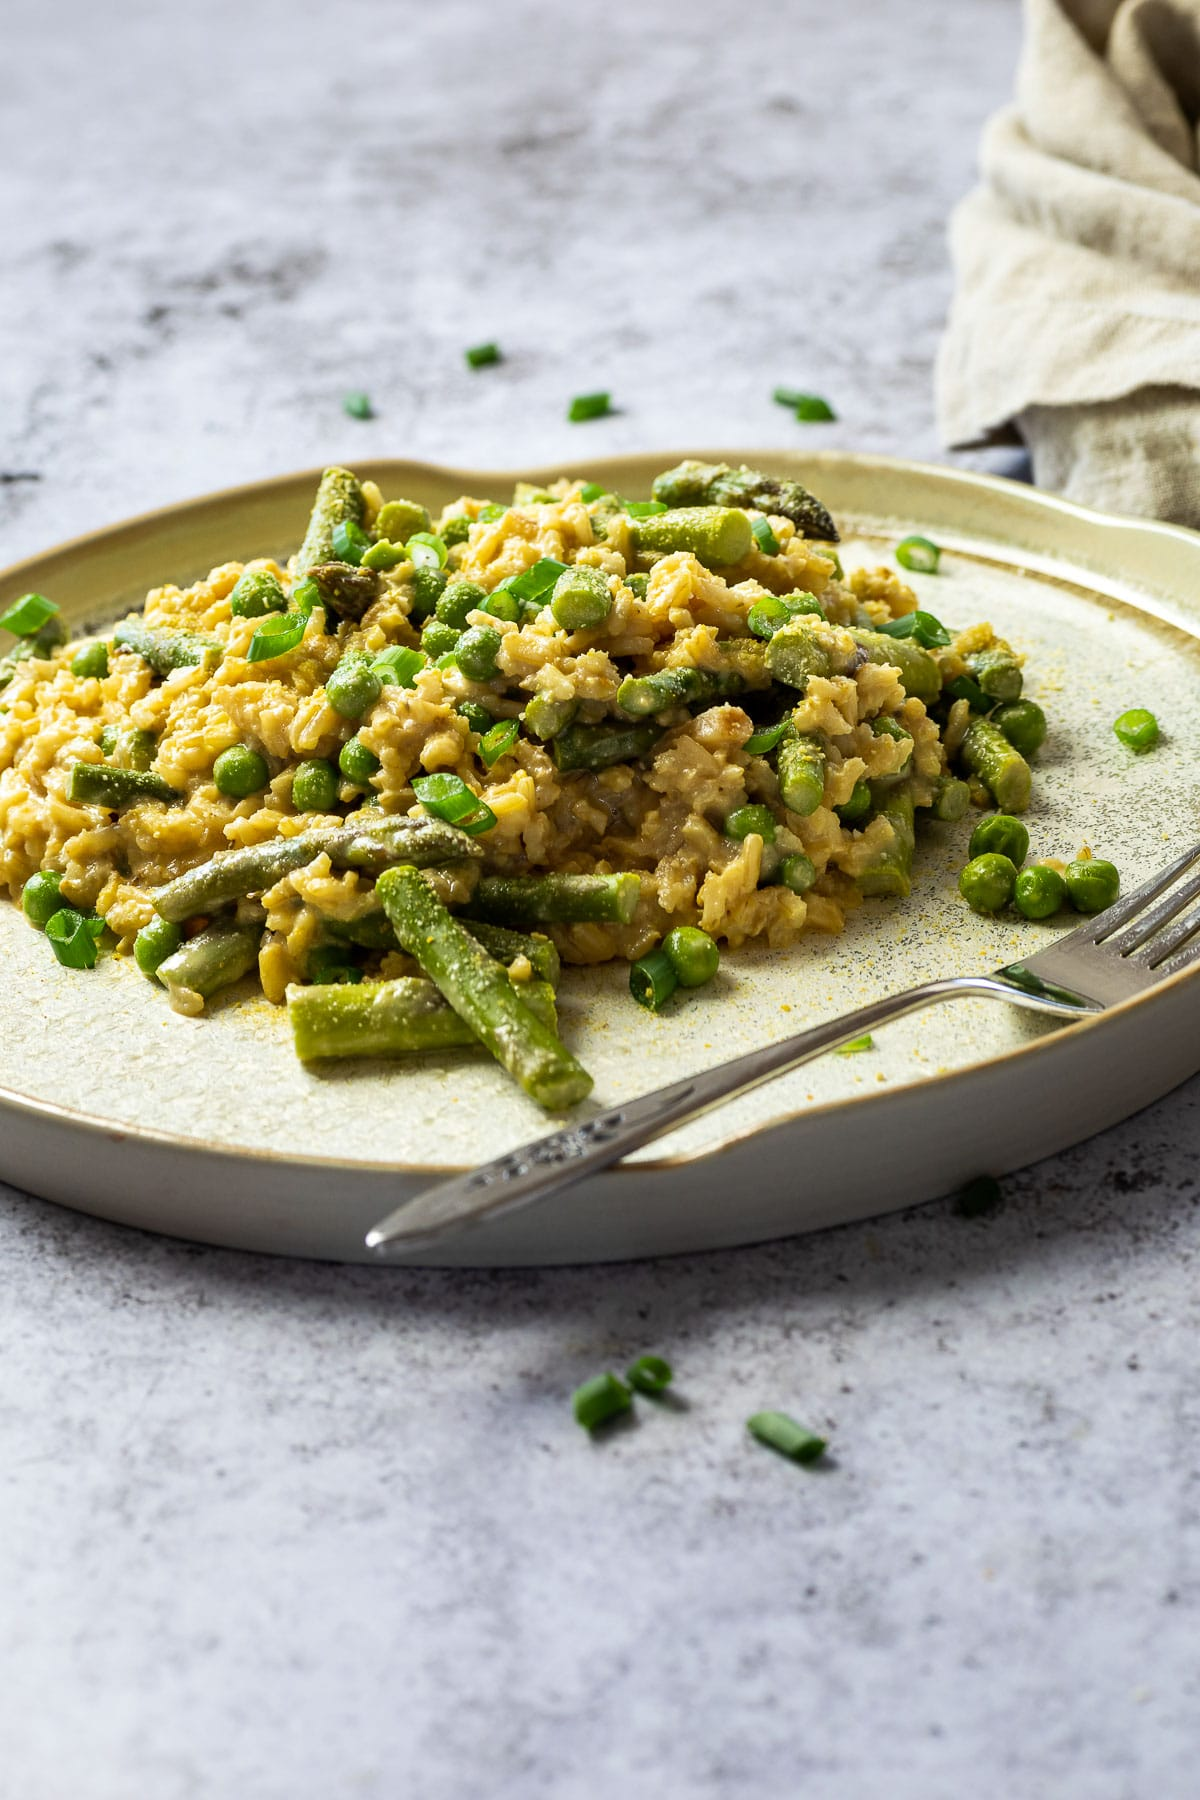 A different ancle of plant based pea and asparagus risotto with a cloth in the background.